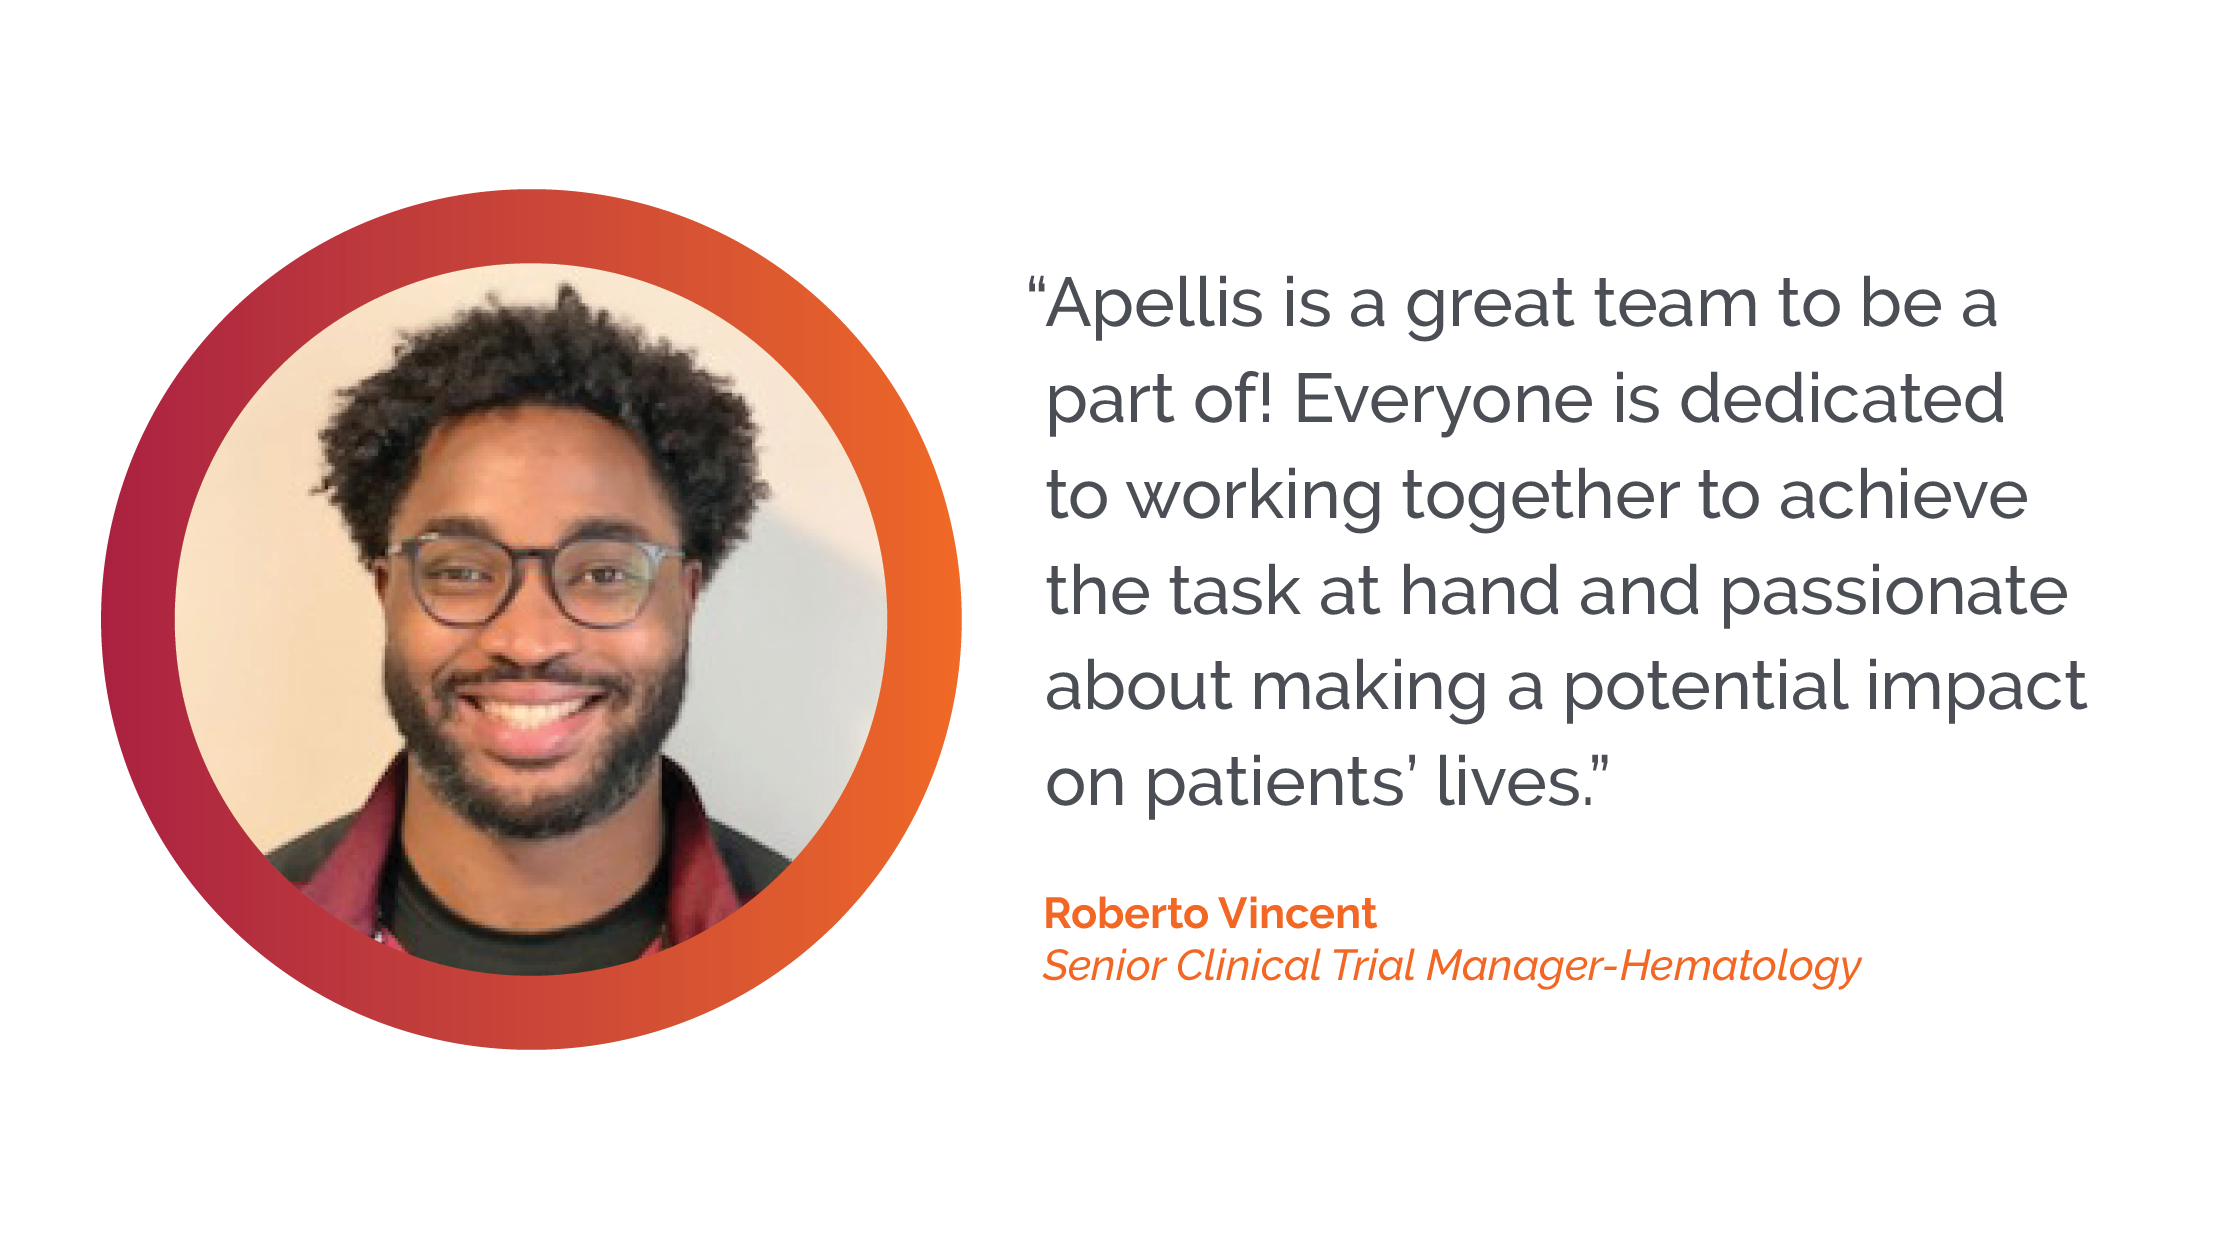 Apellis is a great team to be a part of - Roberto Vincent